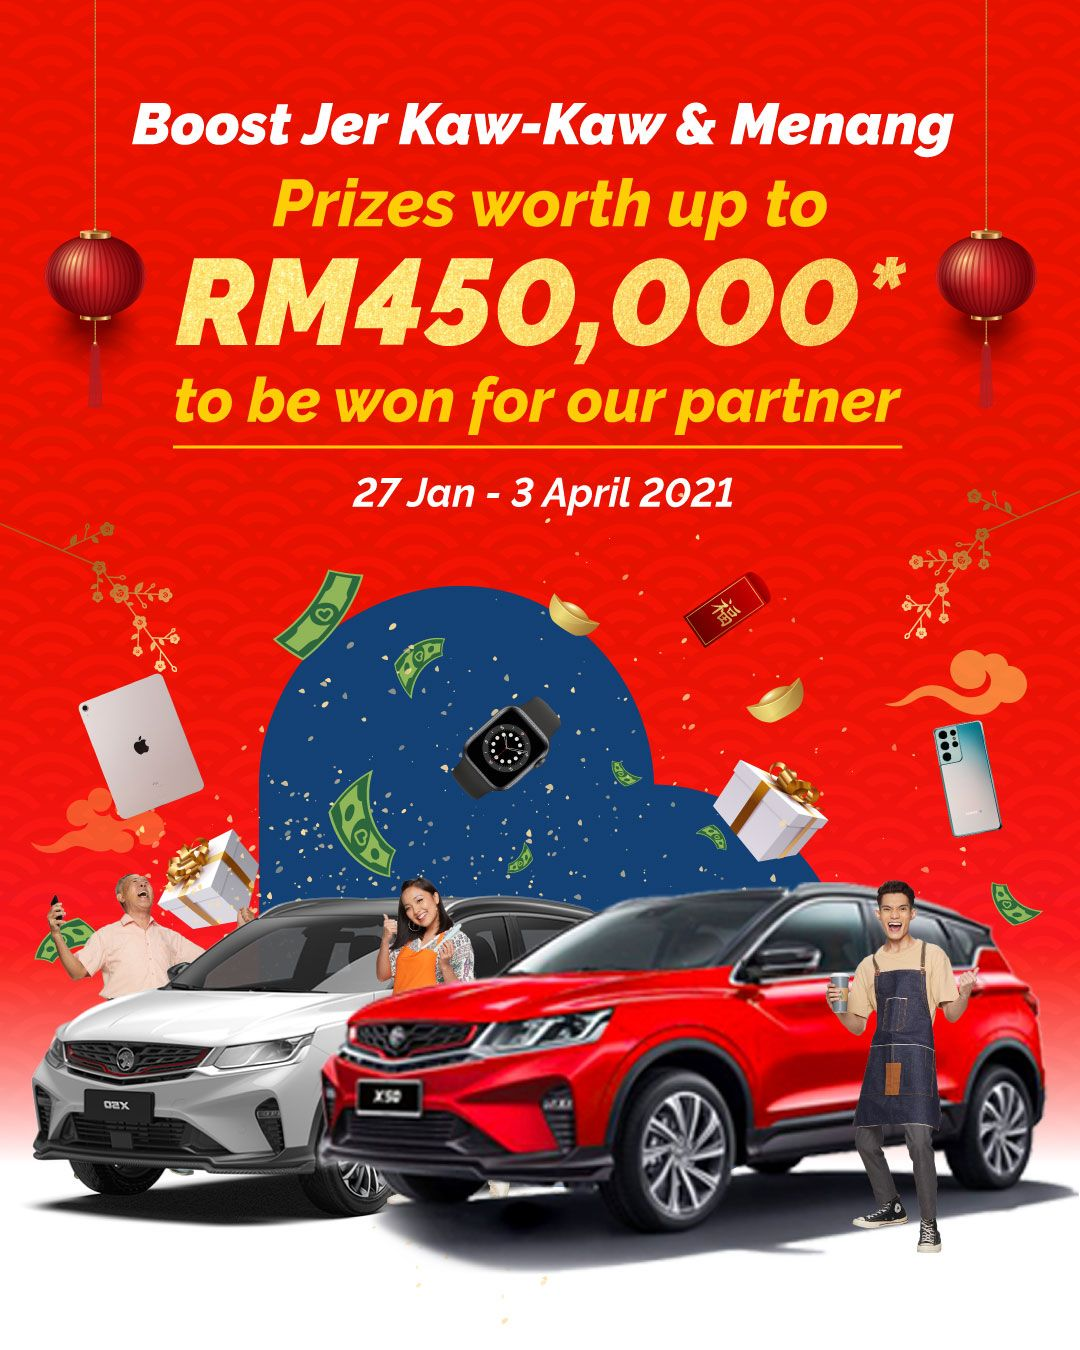 Boost partners with McDelivery and Lazada to offer cashback and voucher 3